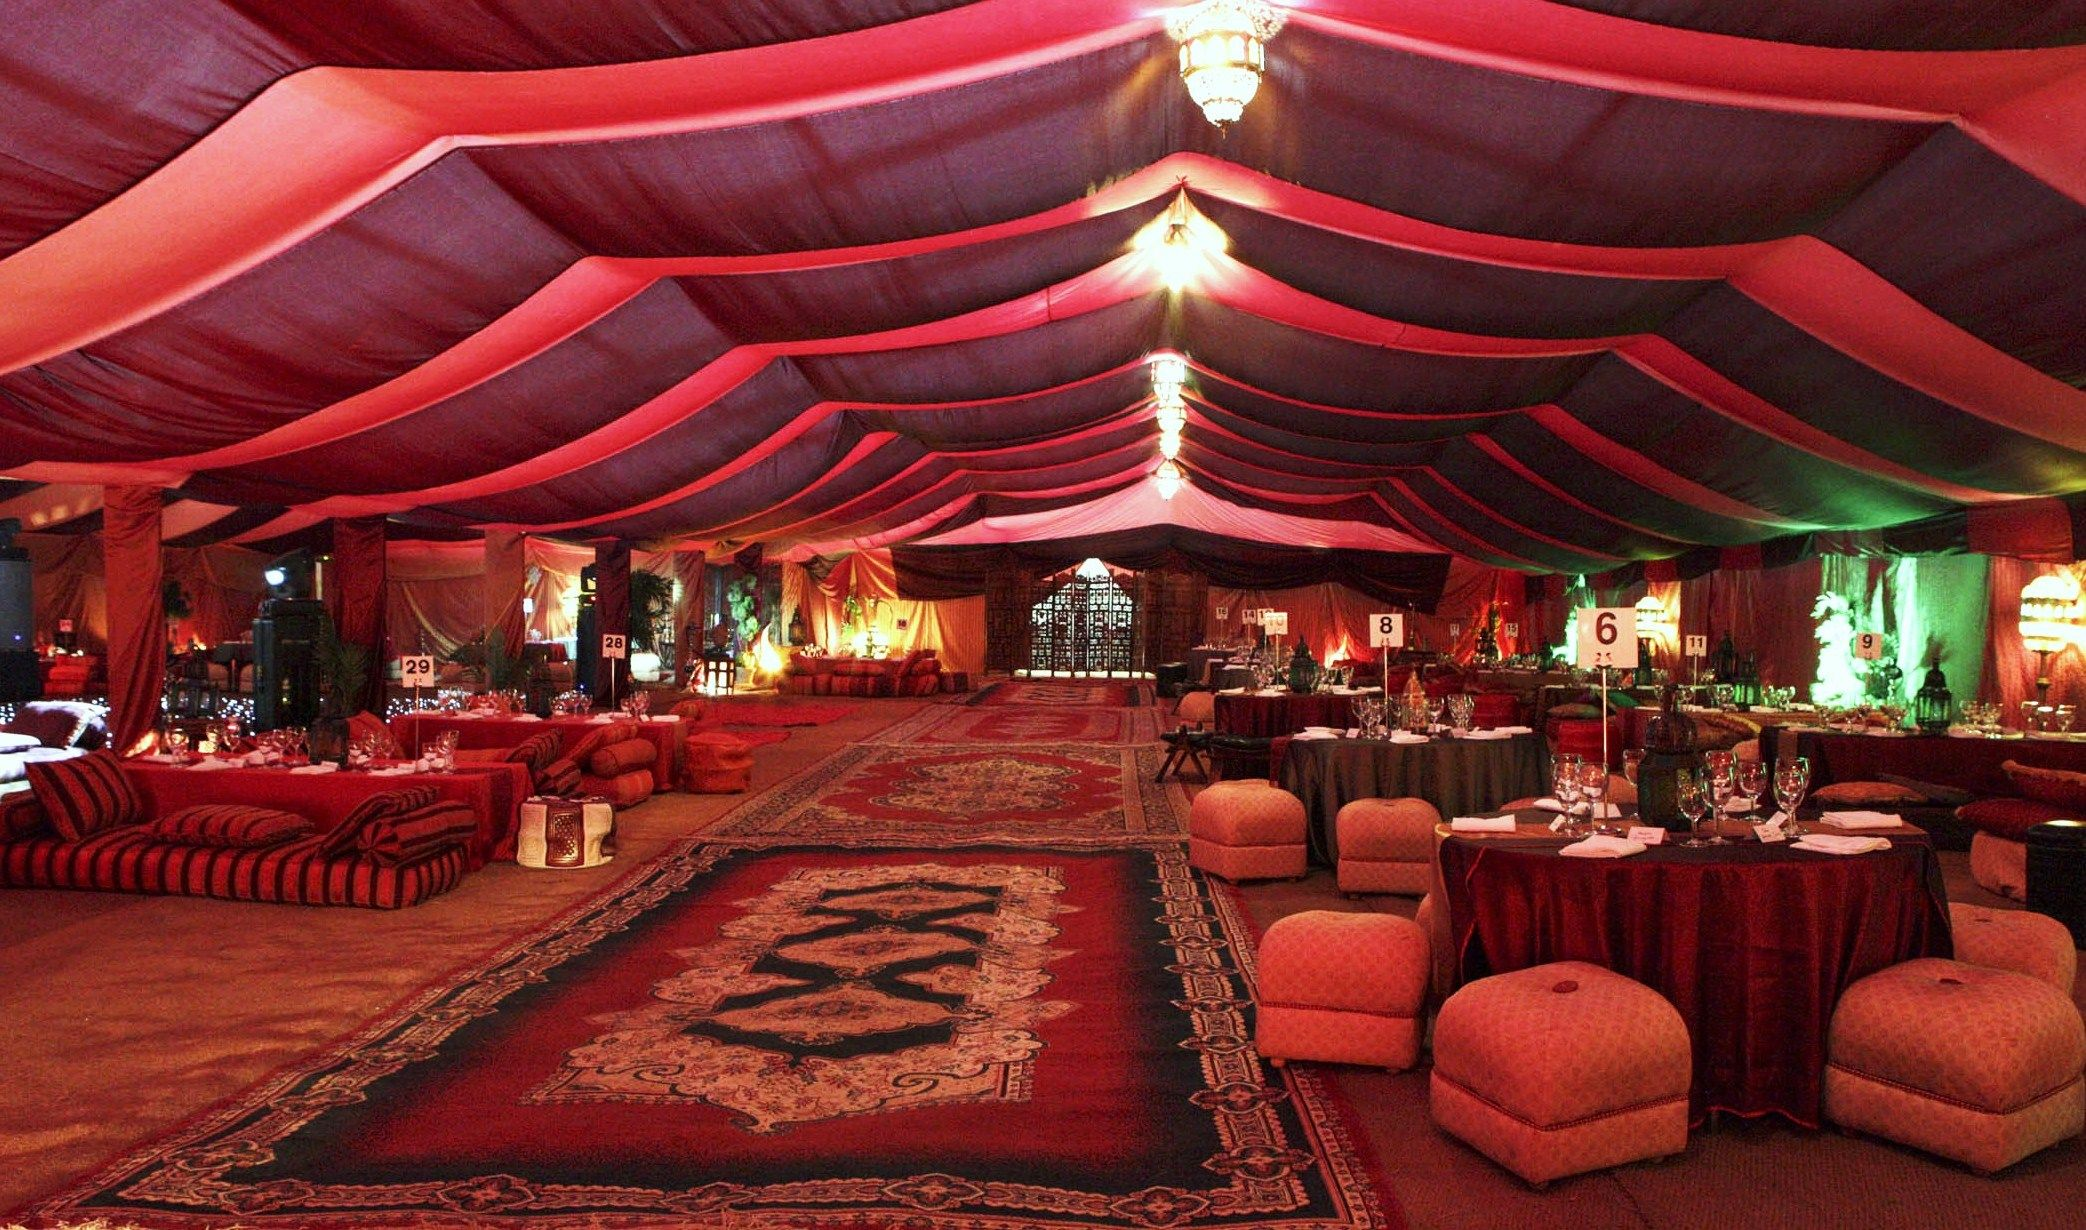 Wedding Cake Decorating Ideas 6 Arabian Night Tent Wedding Arabian Nights Wedding Wedding Tent Bedouin Tent